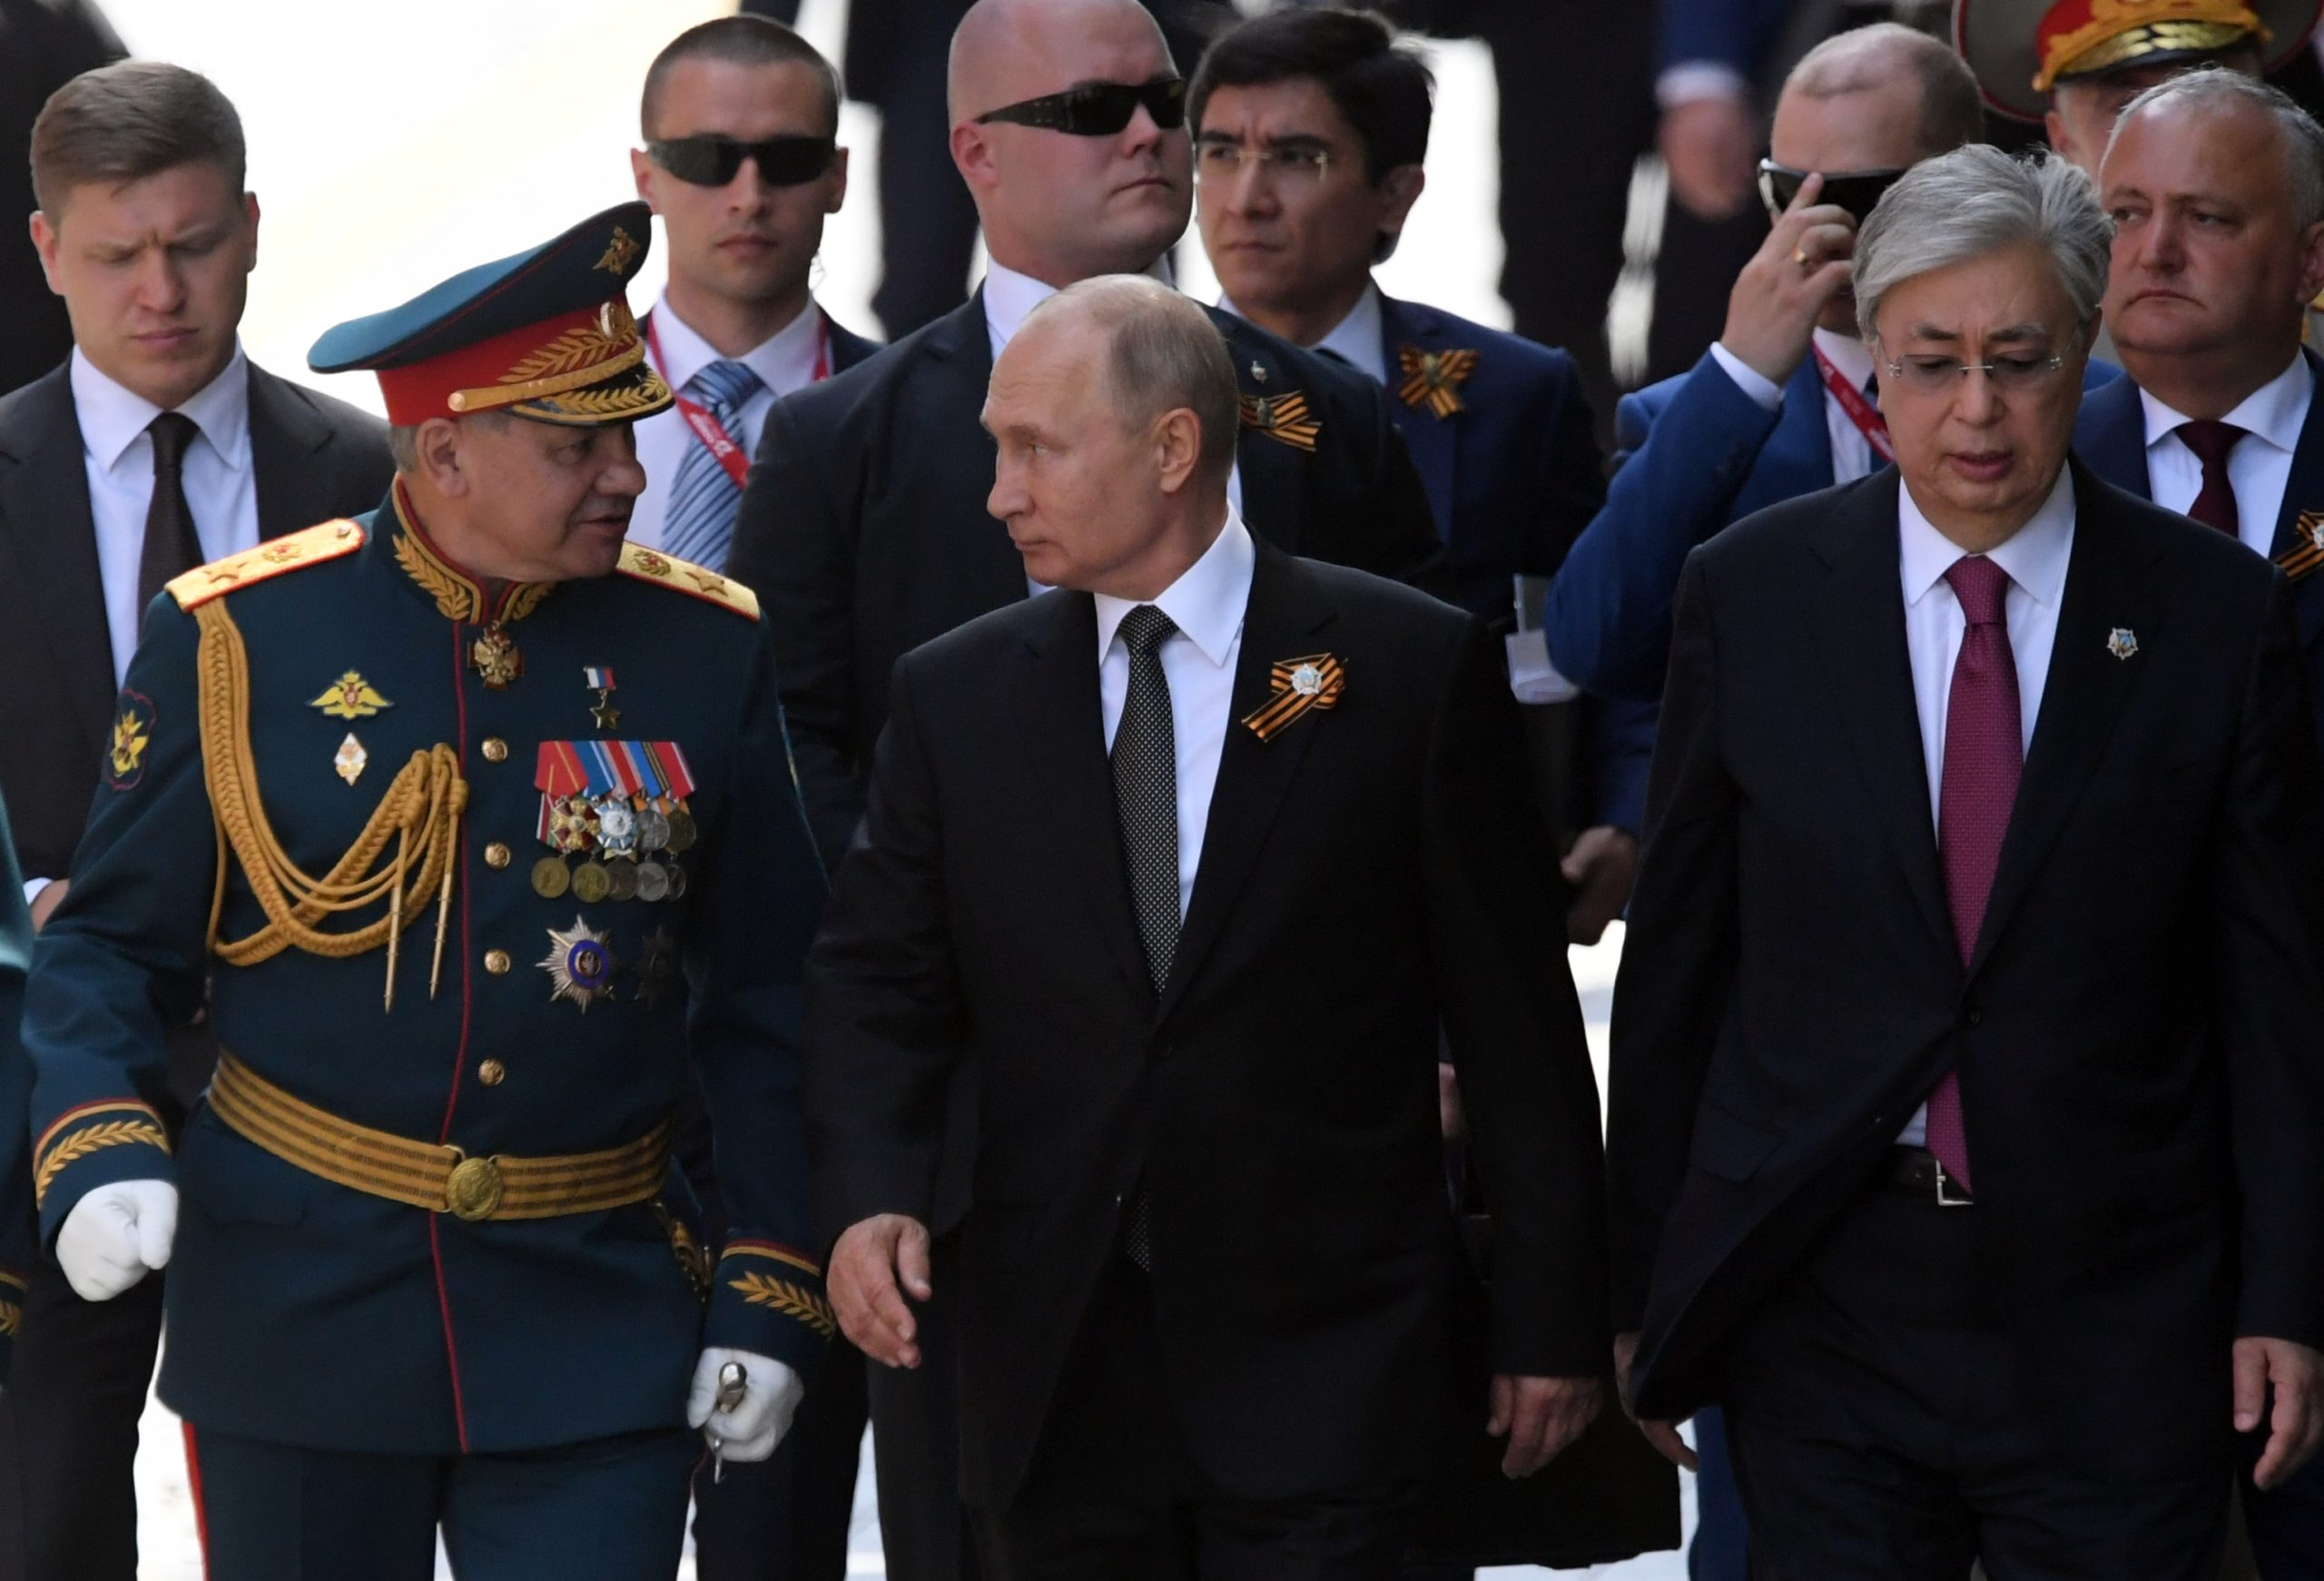 MOSCOW, RUSSIA - JUNE 24: President of Russia and Commander-in-Chief of the Armed Forces Vladimir Putin (C) and Russian Defense Minister Sergei Shoigu (L) and President of Kazakhstan Kassym-Jomart Tokayev (R) during a Victory Day military parade marking the 75th anniversary of the victory in World War II, on June 24, 2020 in Moscow, Russia. (Photo by Kirill Kallinikov - Host Photo Agency via Getty Images )